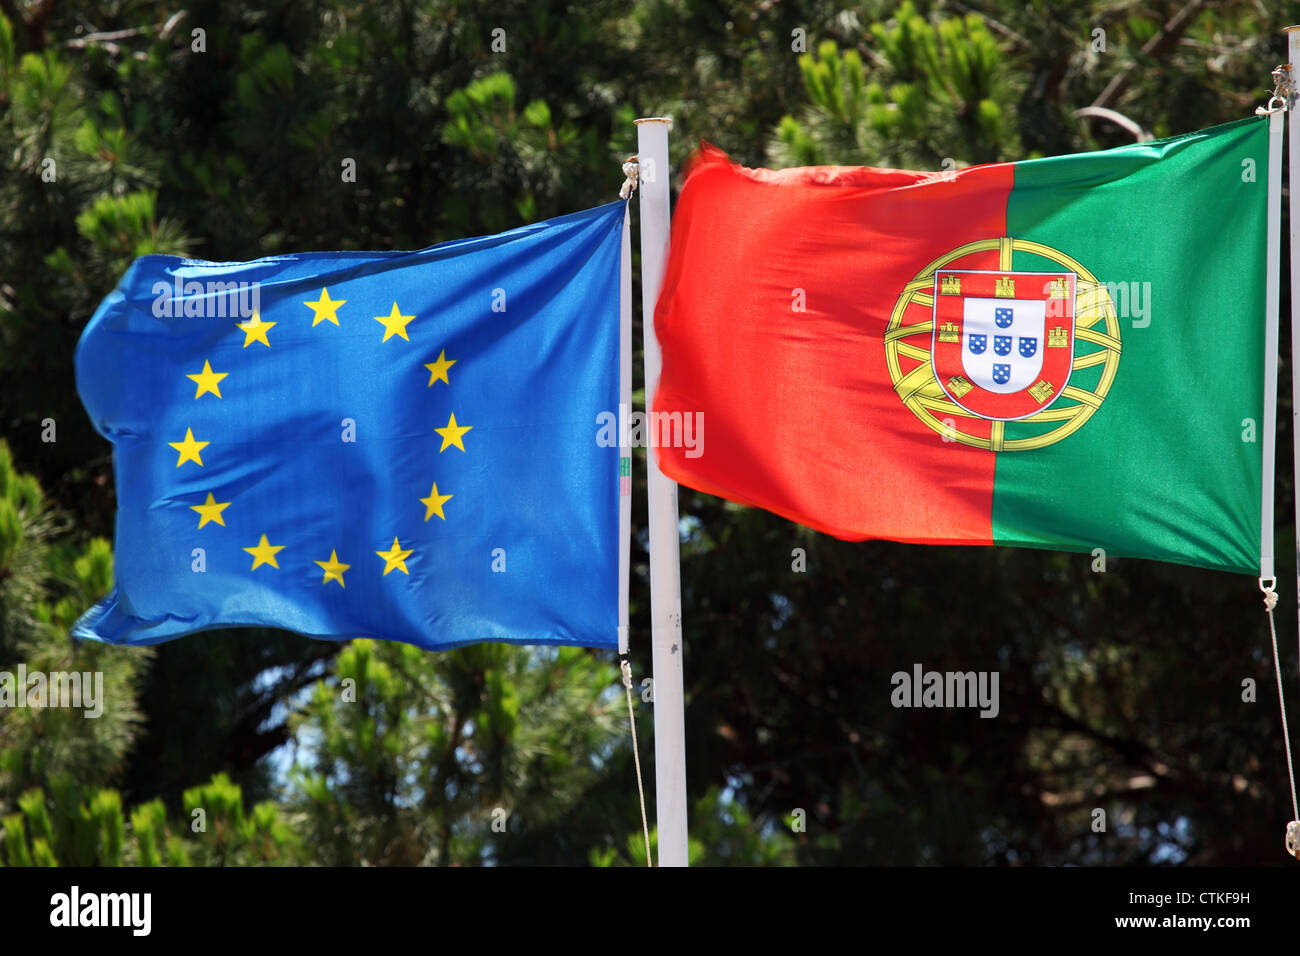 The flags of the European Union (left) and Portugal (right) fly in Lisbon, Portugal. - Stock Image